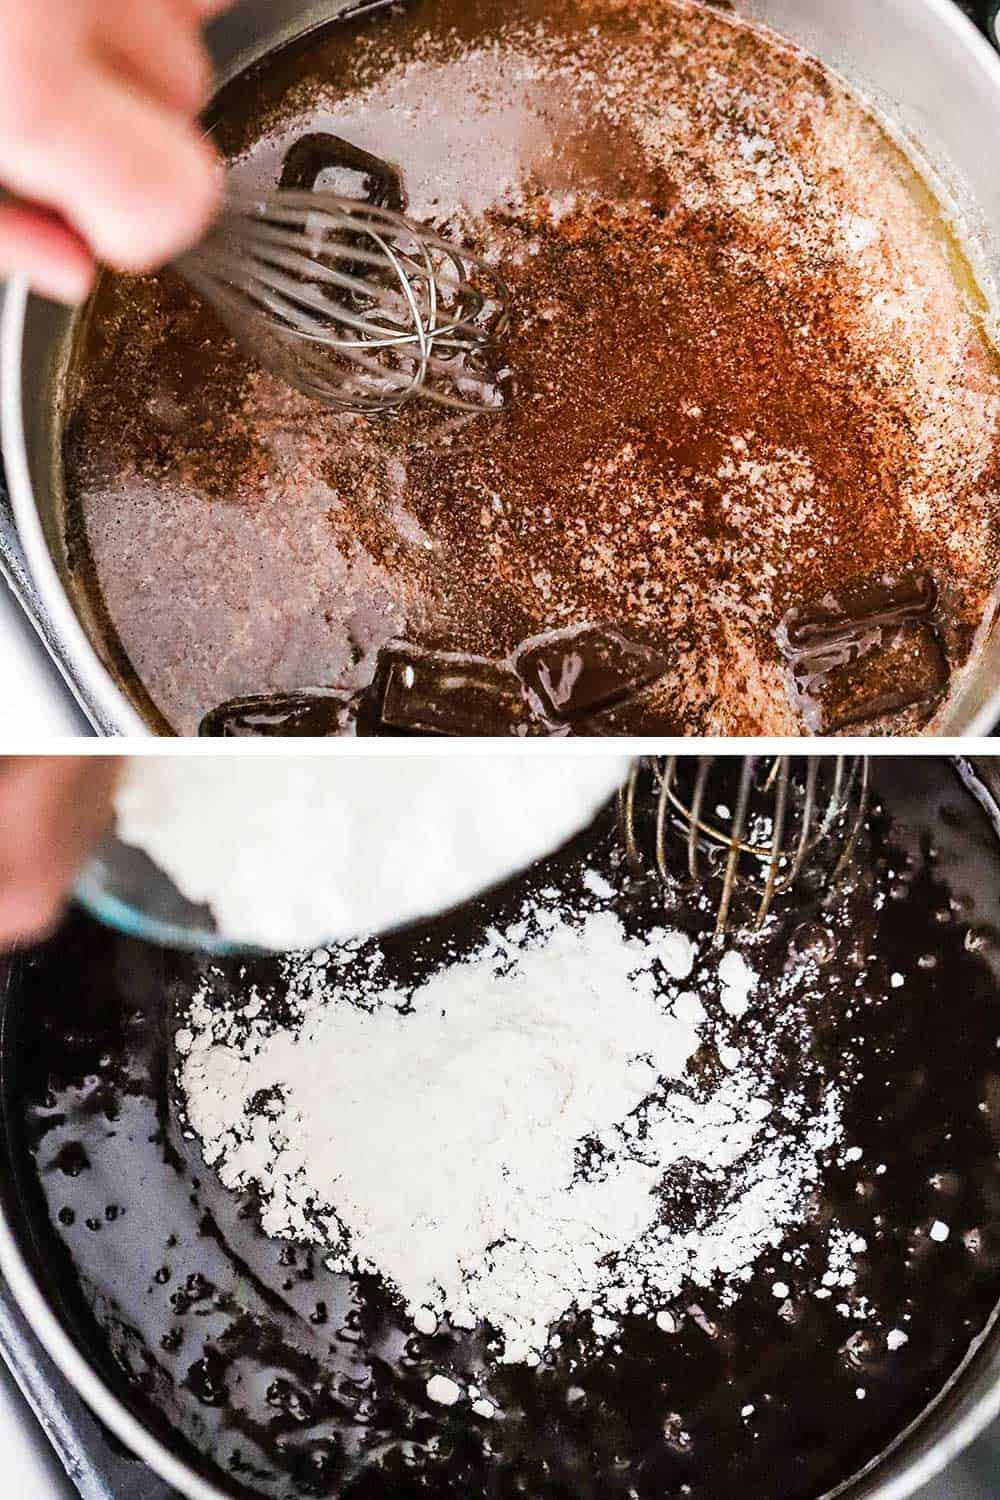 A medium saucepan filled with melted chocolate and butter and then the same pan with flour being poured into the chocolate mixture.